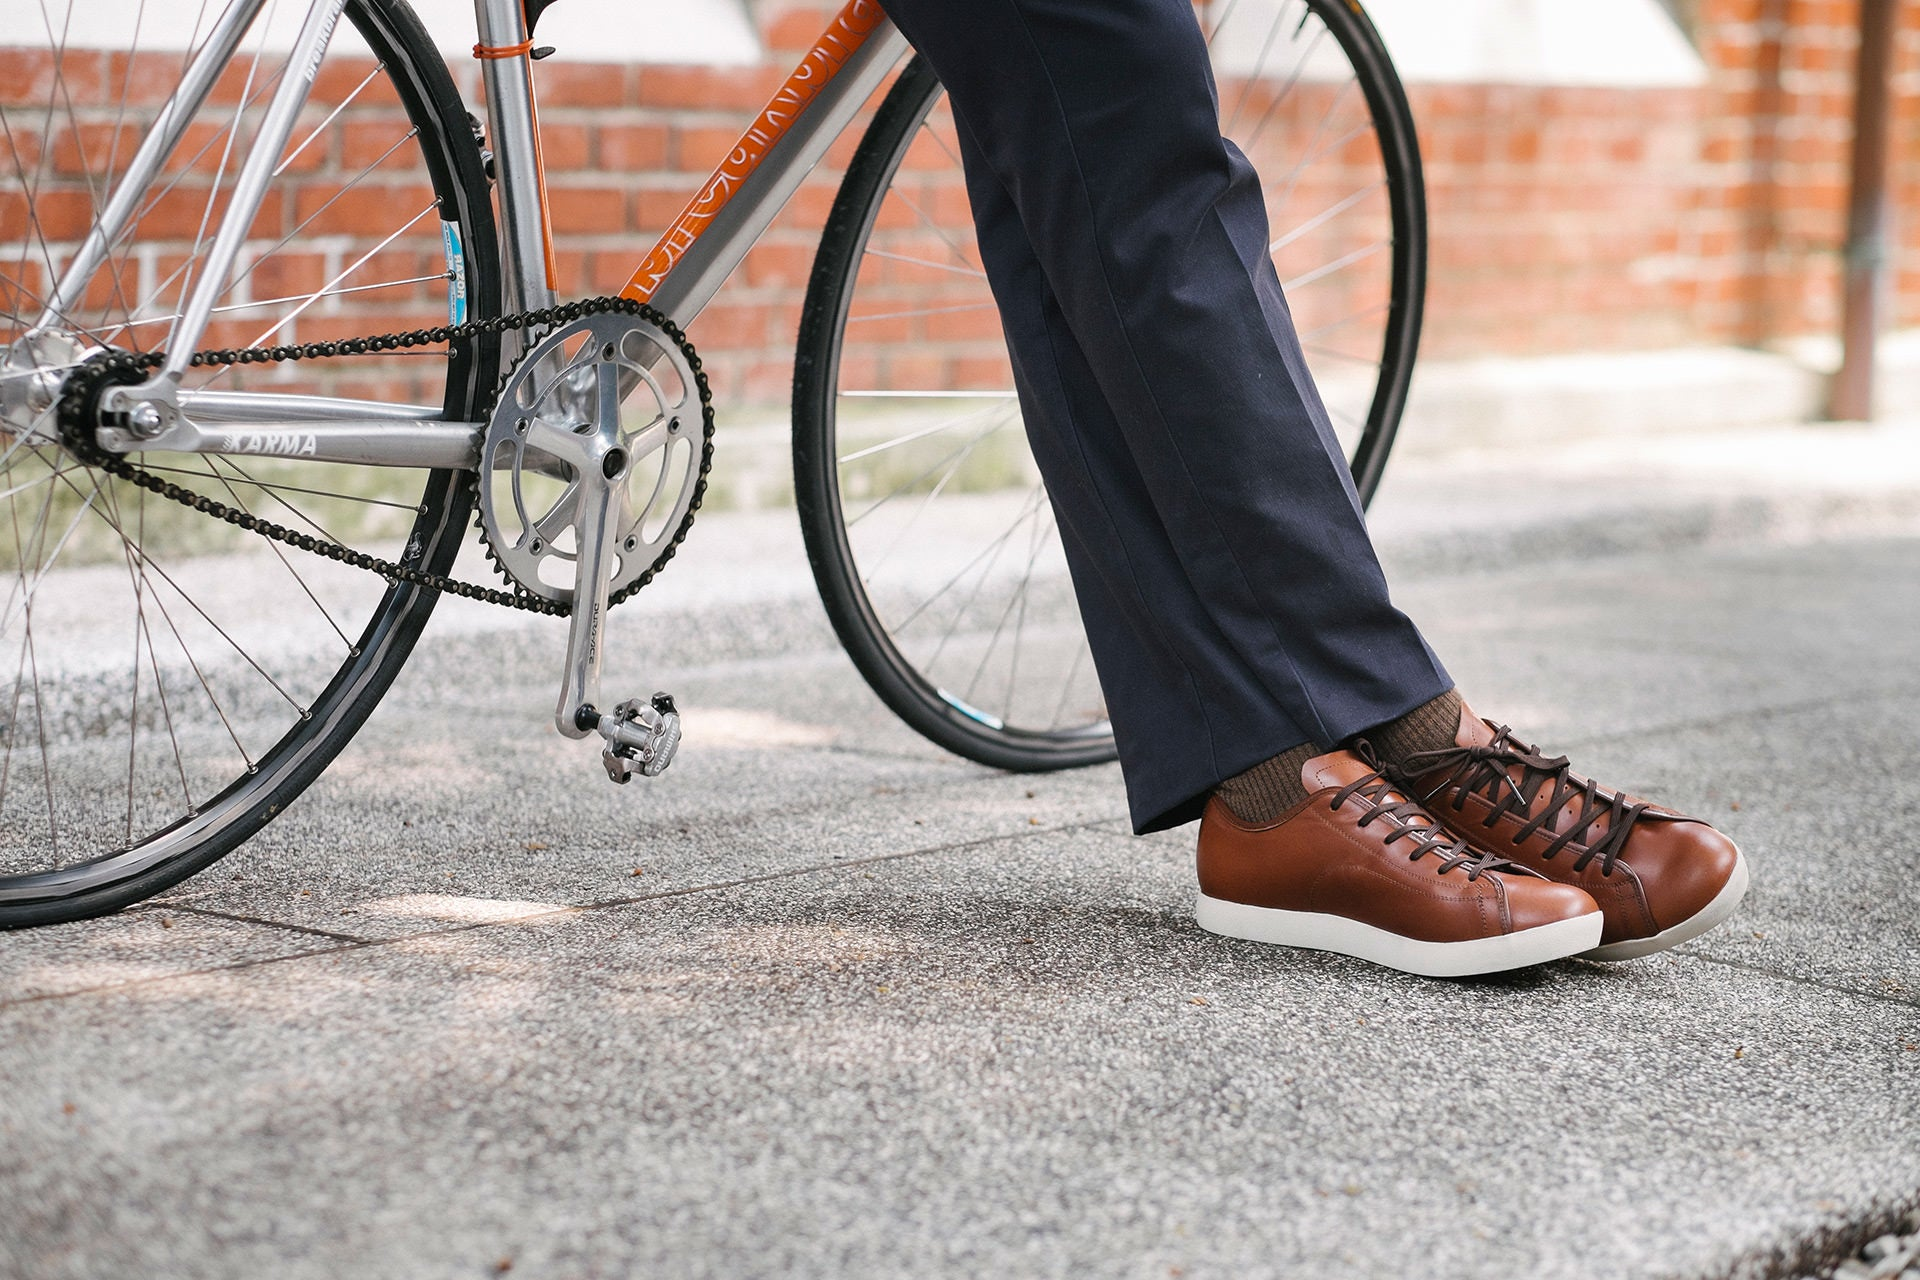 Quoc Urban Cycling shoes - SPD commuter bike footwear